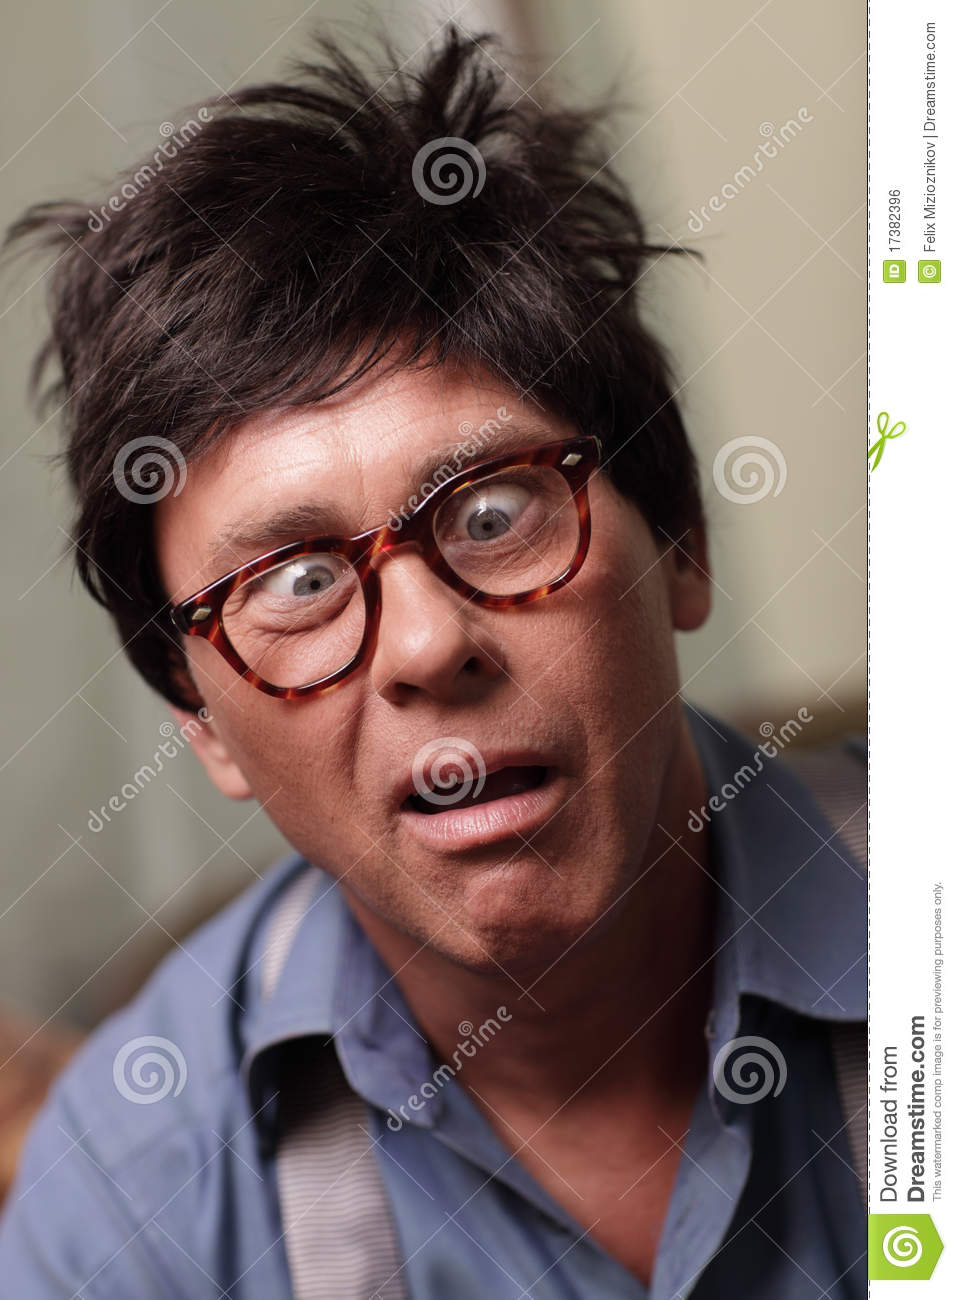 Weird Guy With Glasses 2